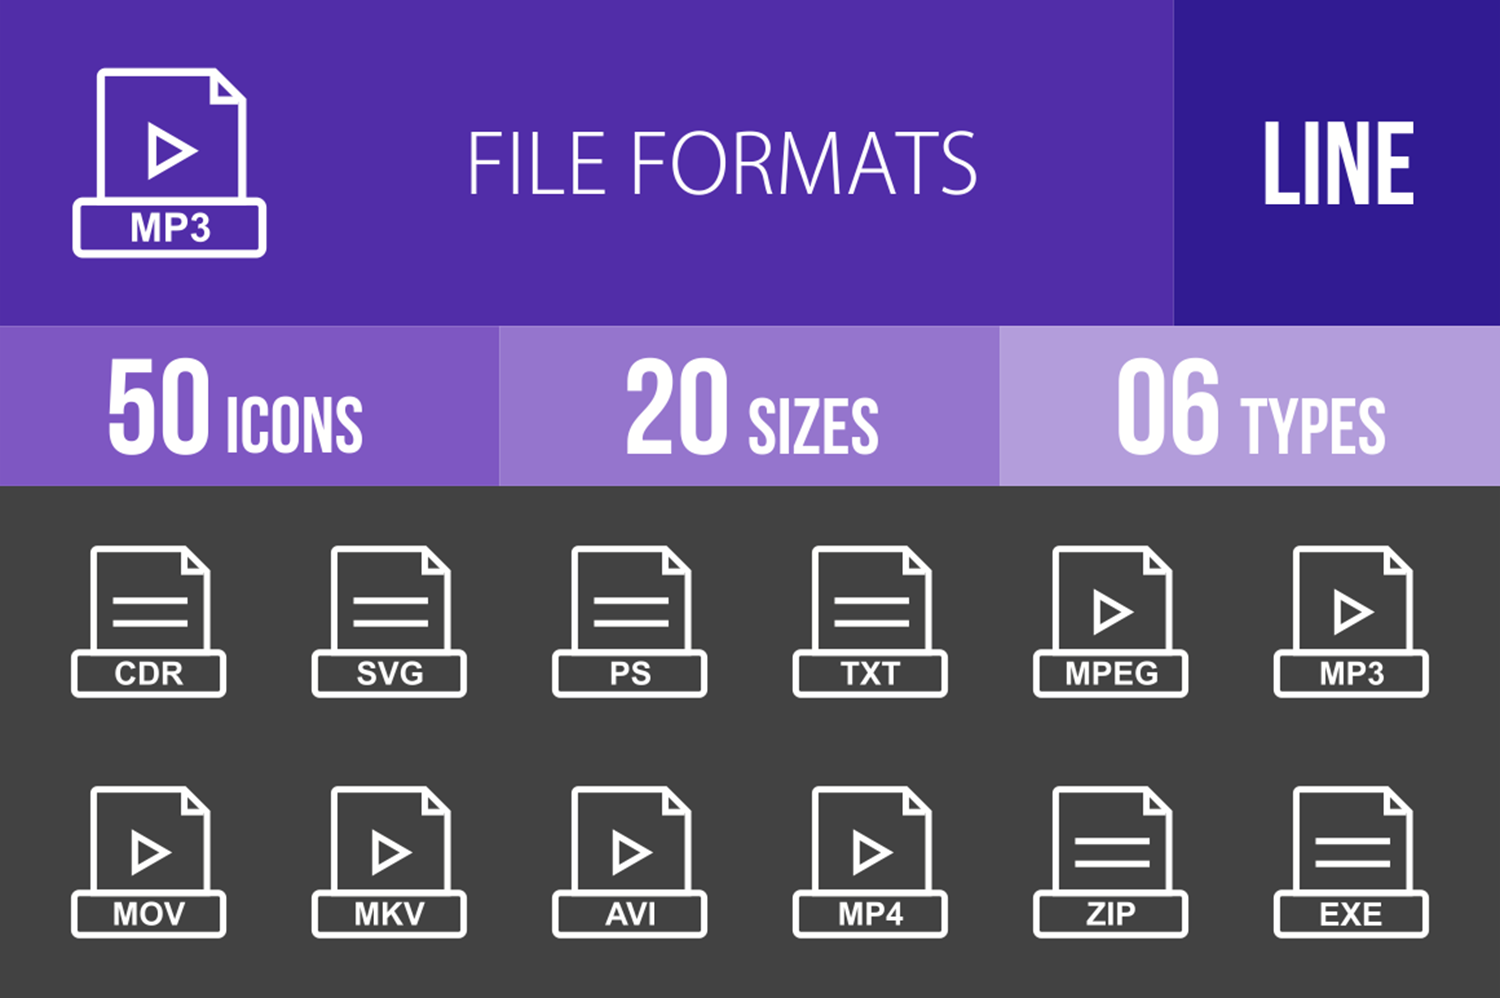 50 File Formats Line Inverted Icons example image 1